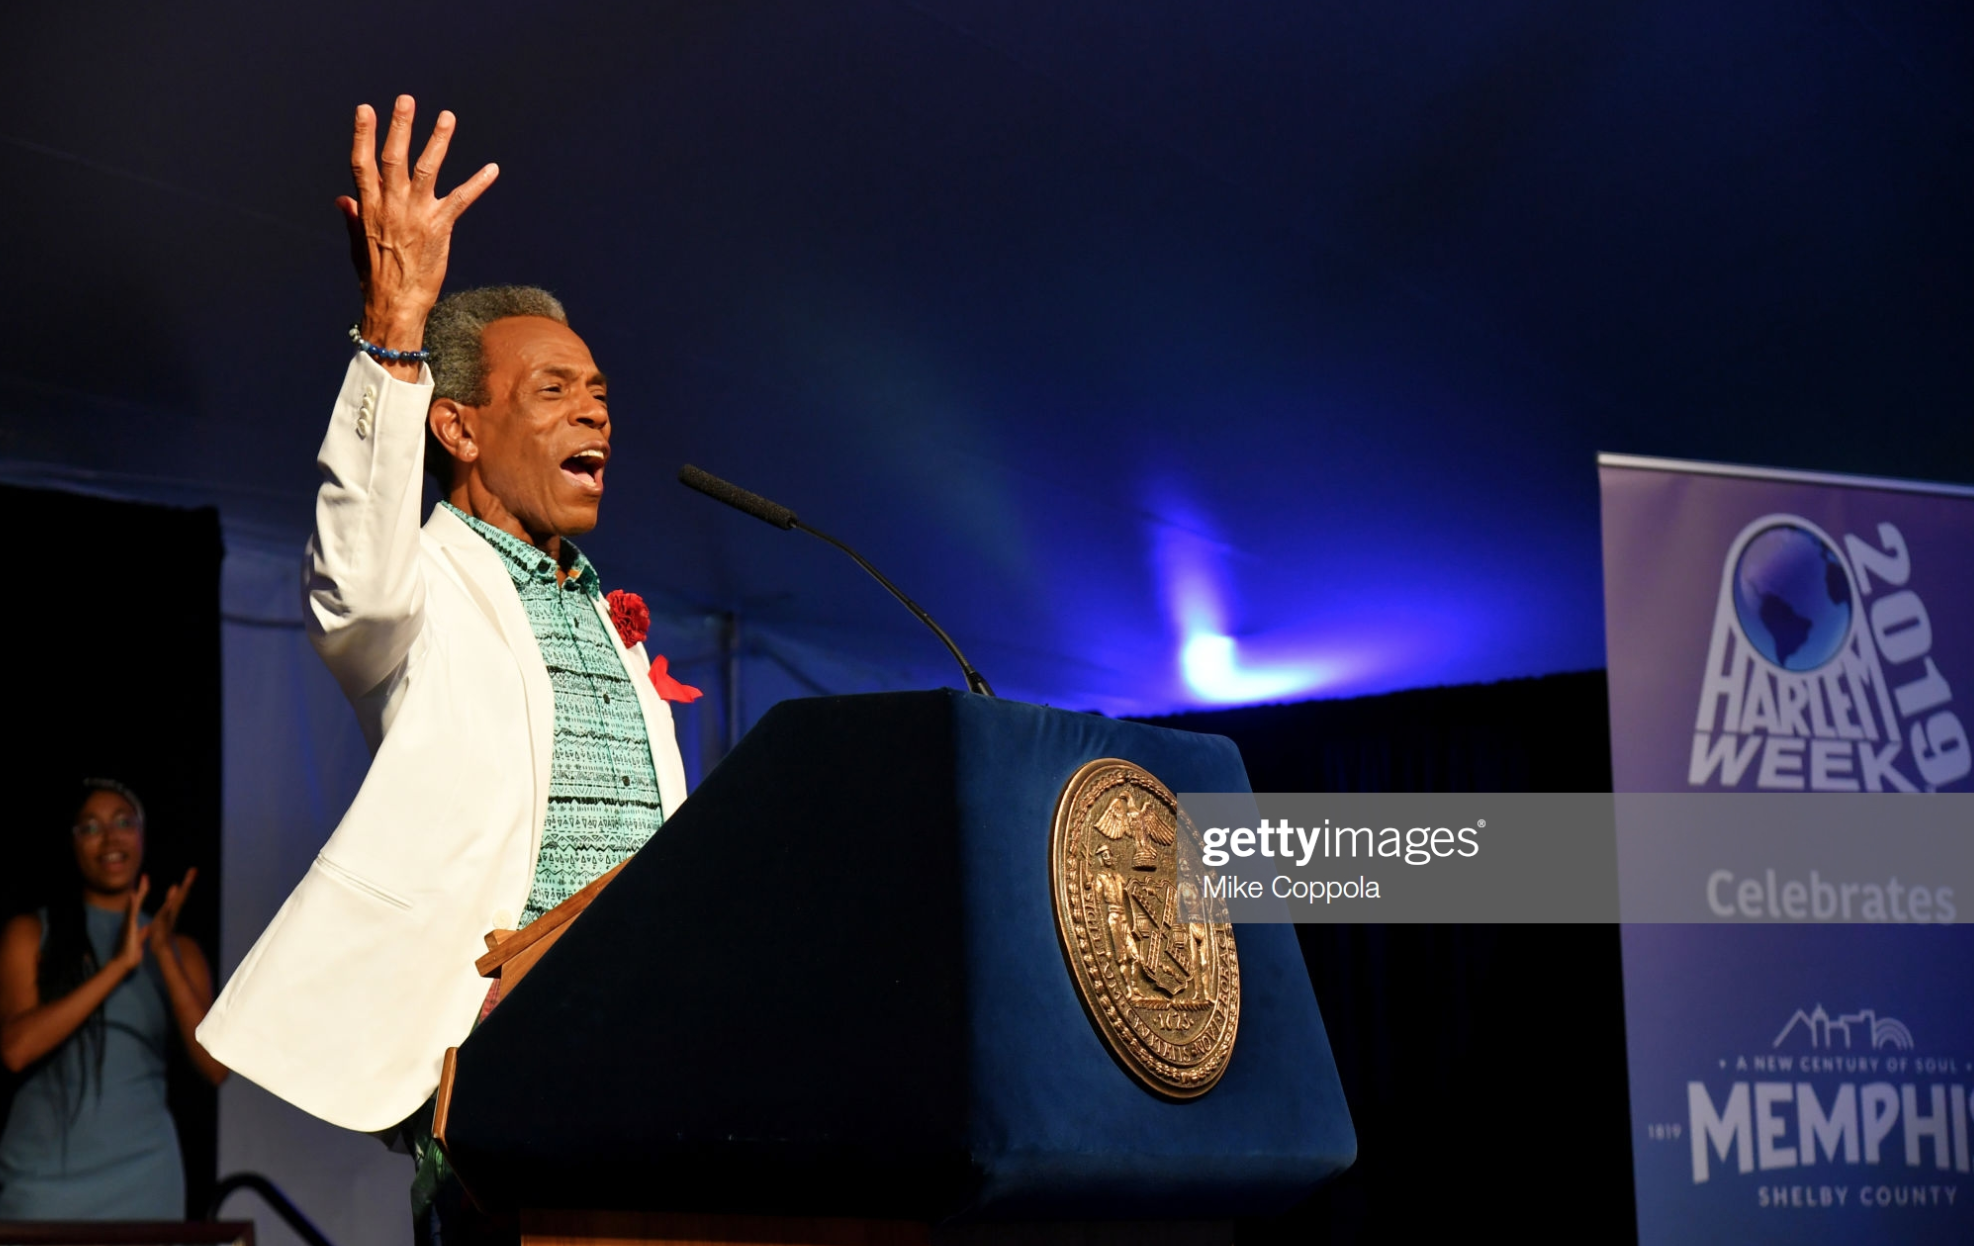 Andre De Shields accepts an award as Harlem, New York City And New York State honor Memphis' 200th Anniversary celebrating %22A New Century Of Soul%22 between two iconic communities at Gracie Mansion on July 18, 2019 in New York City  wearing Fleur'd Pins